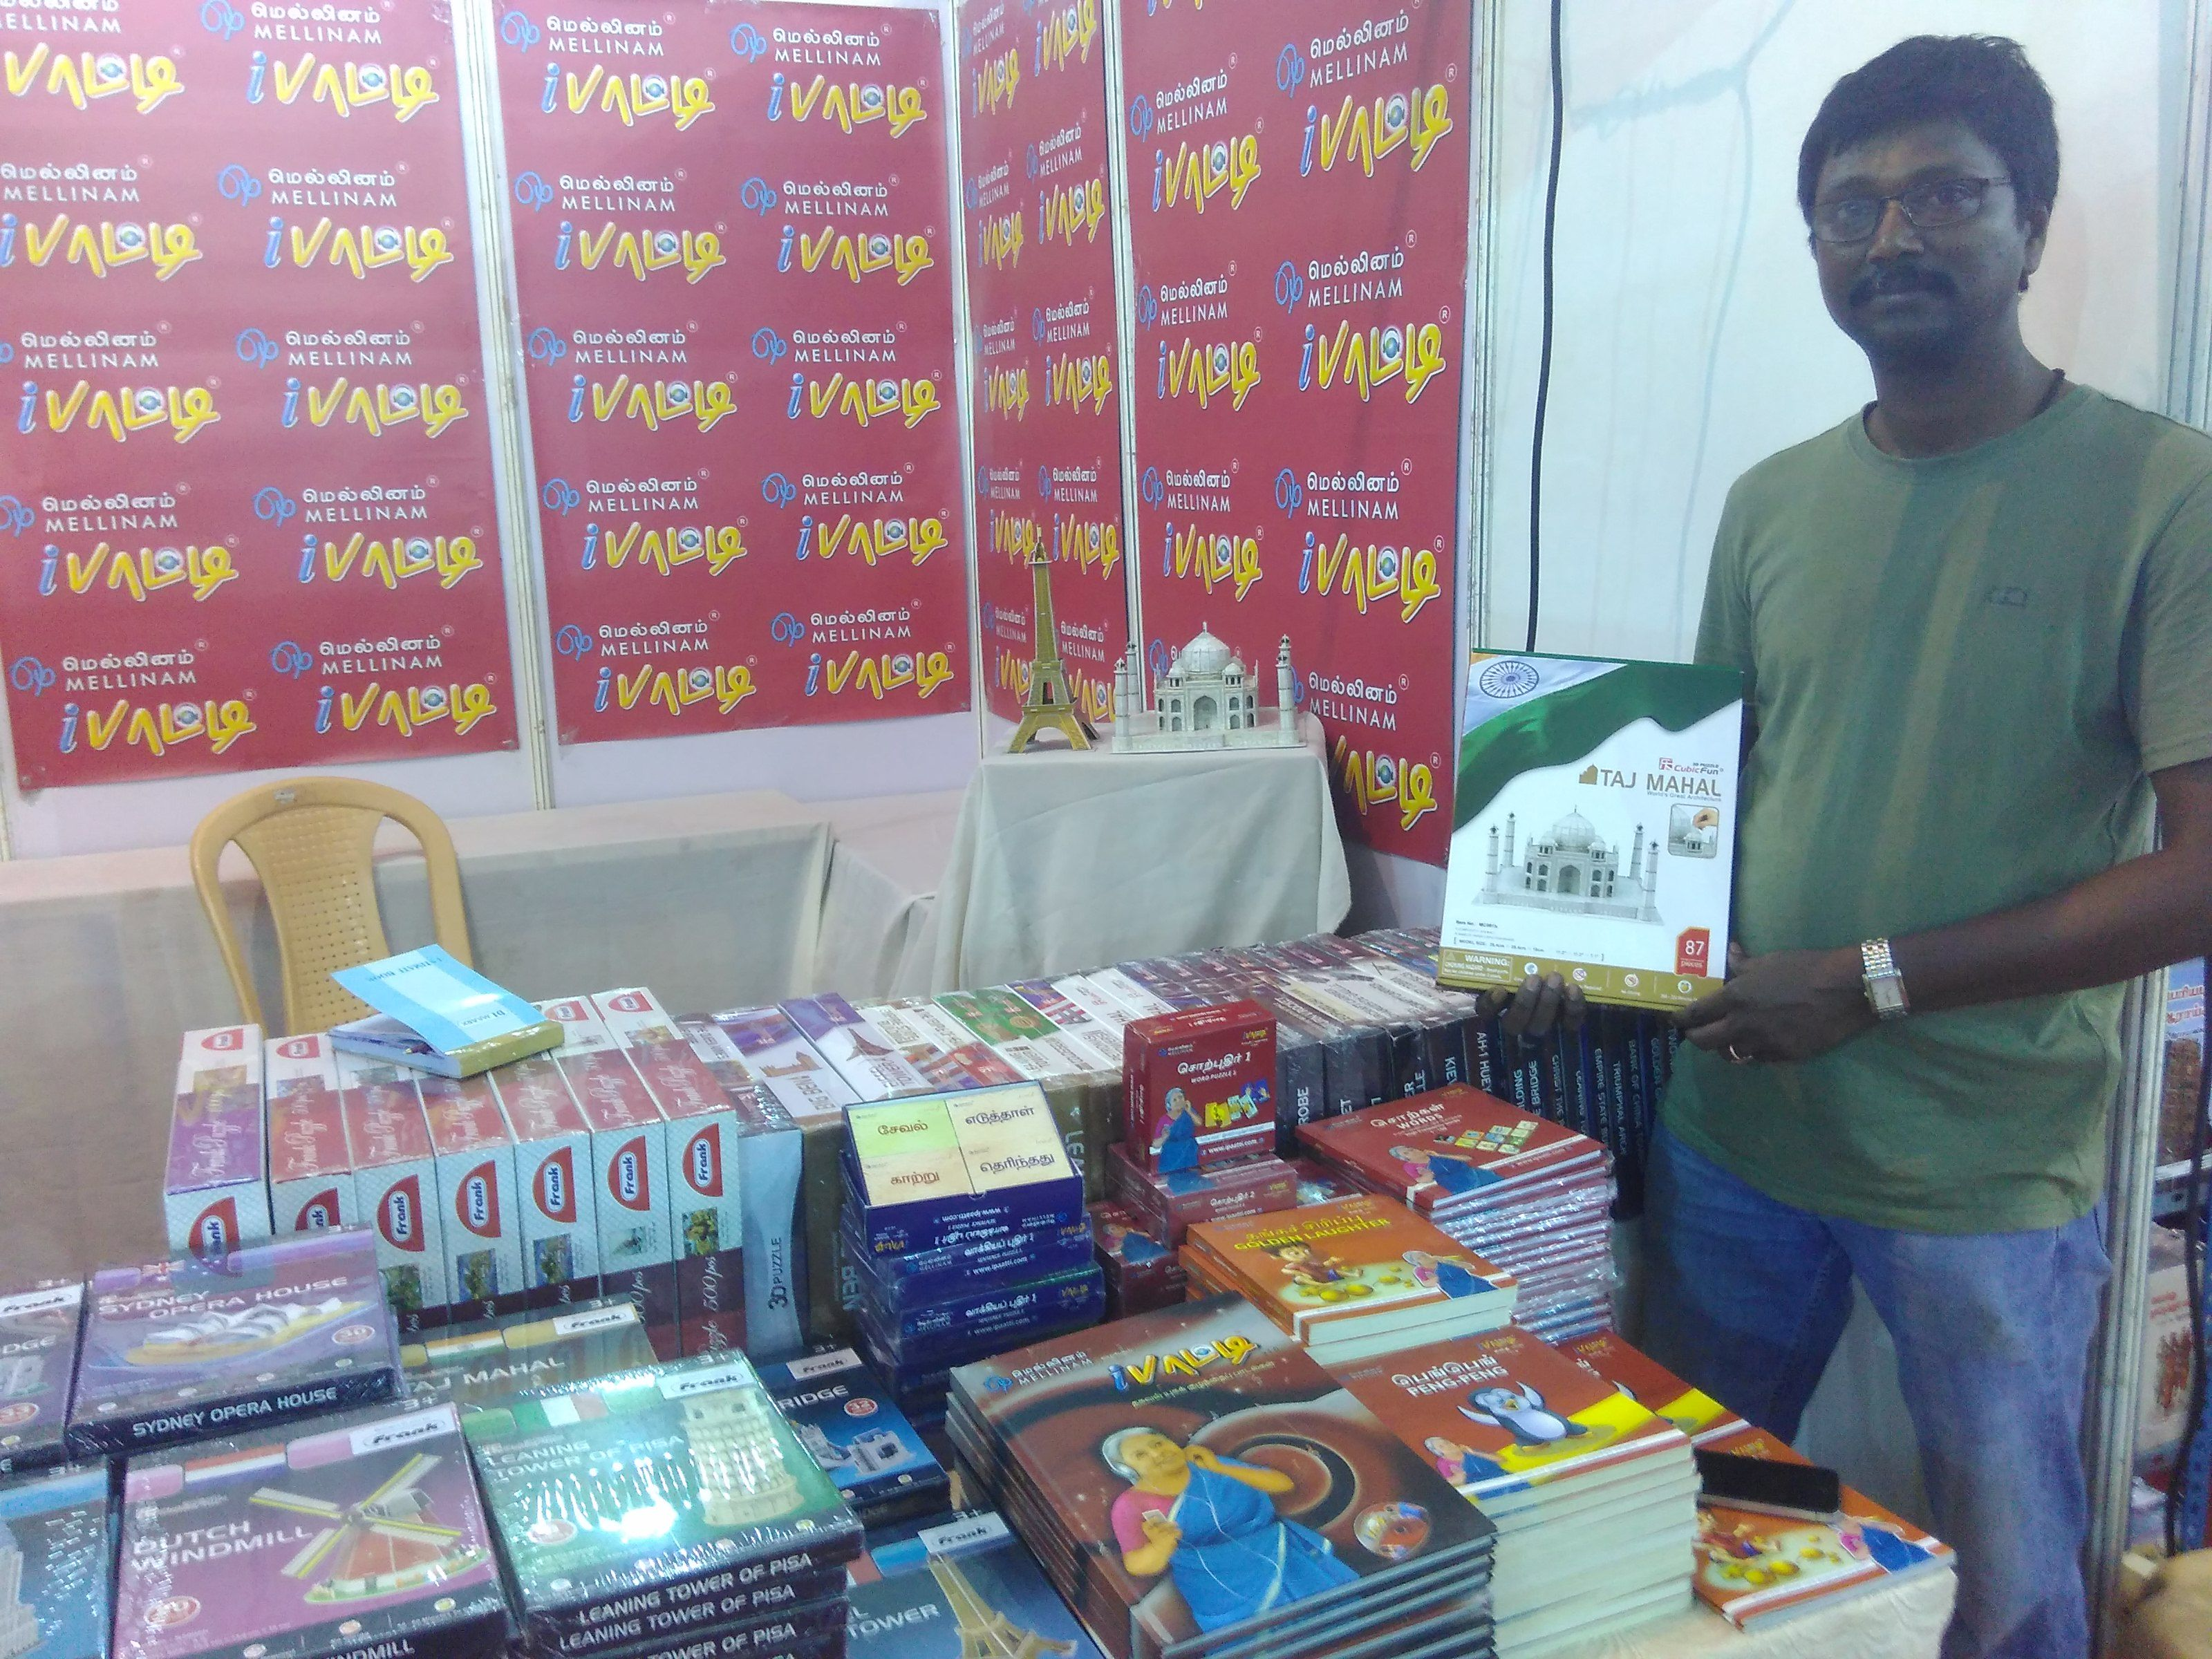 Chennai book fair 2016 - Amogha enterprises